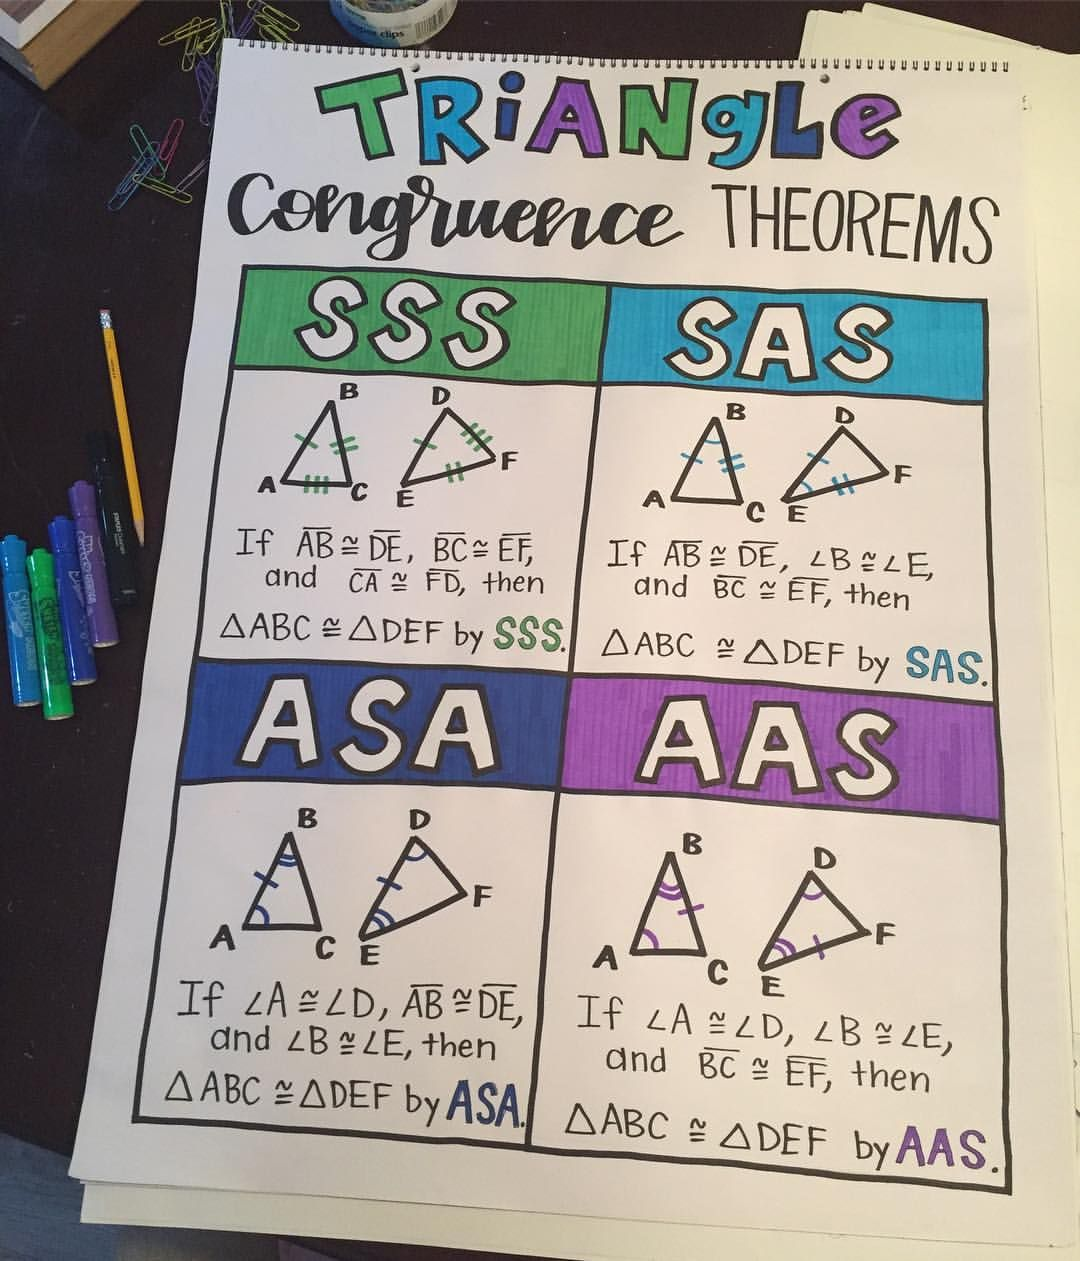 medium resolution of I've got so much SAS 💁🏼🔼 Triangle Congruence Theorems anchor chart for  my #GEOMETRY friends 💚?…   Geometry high school